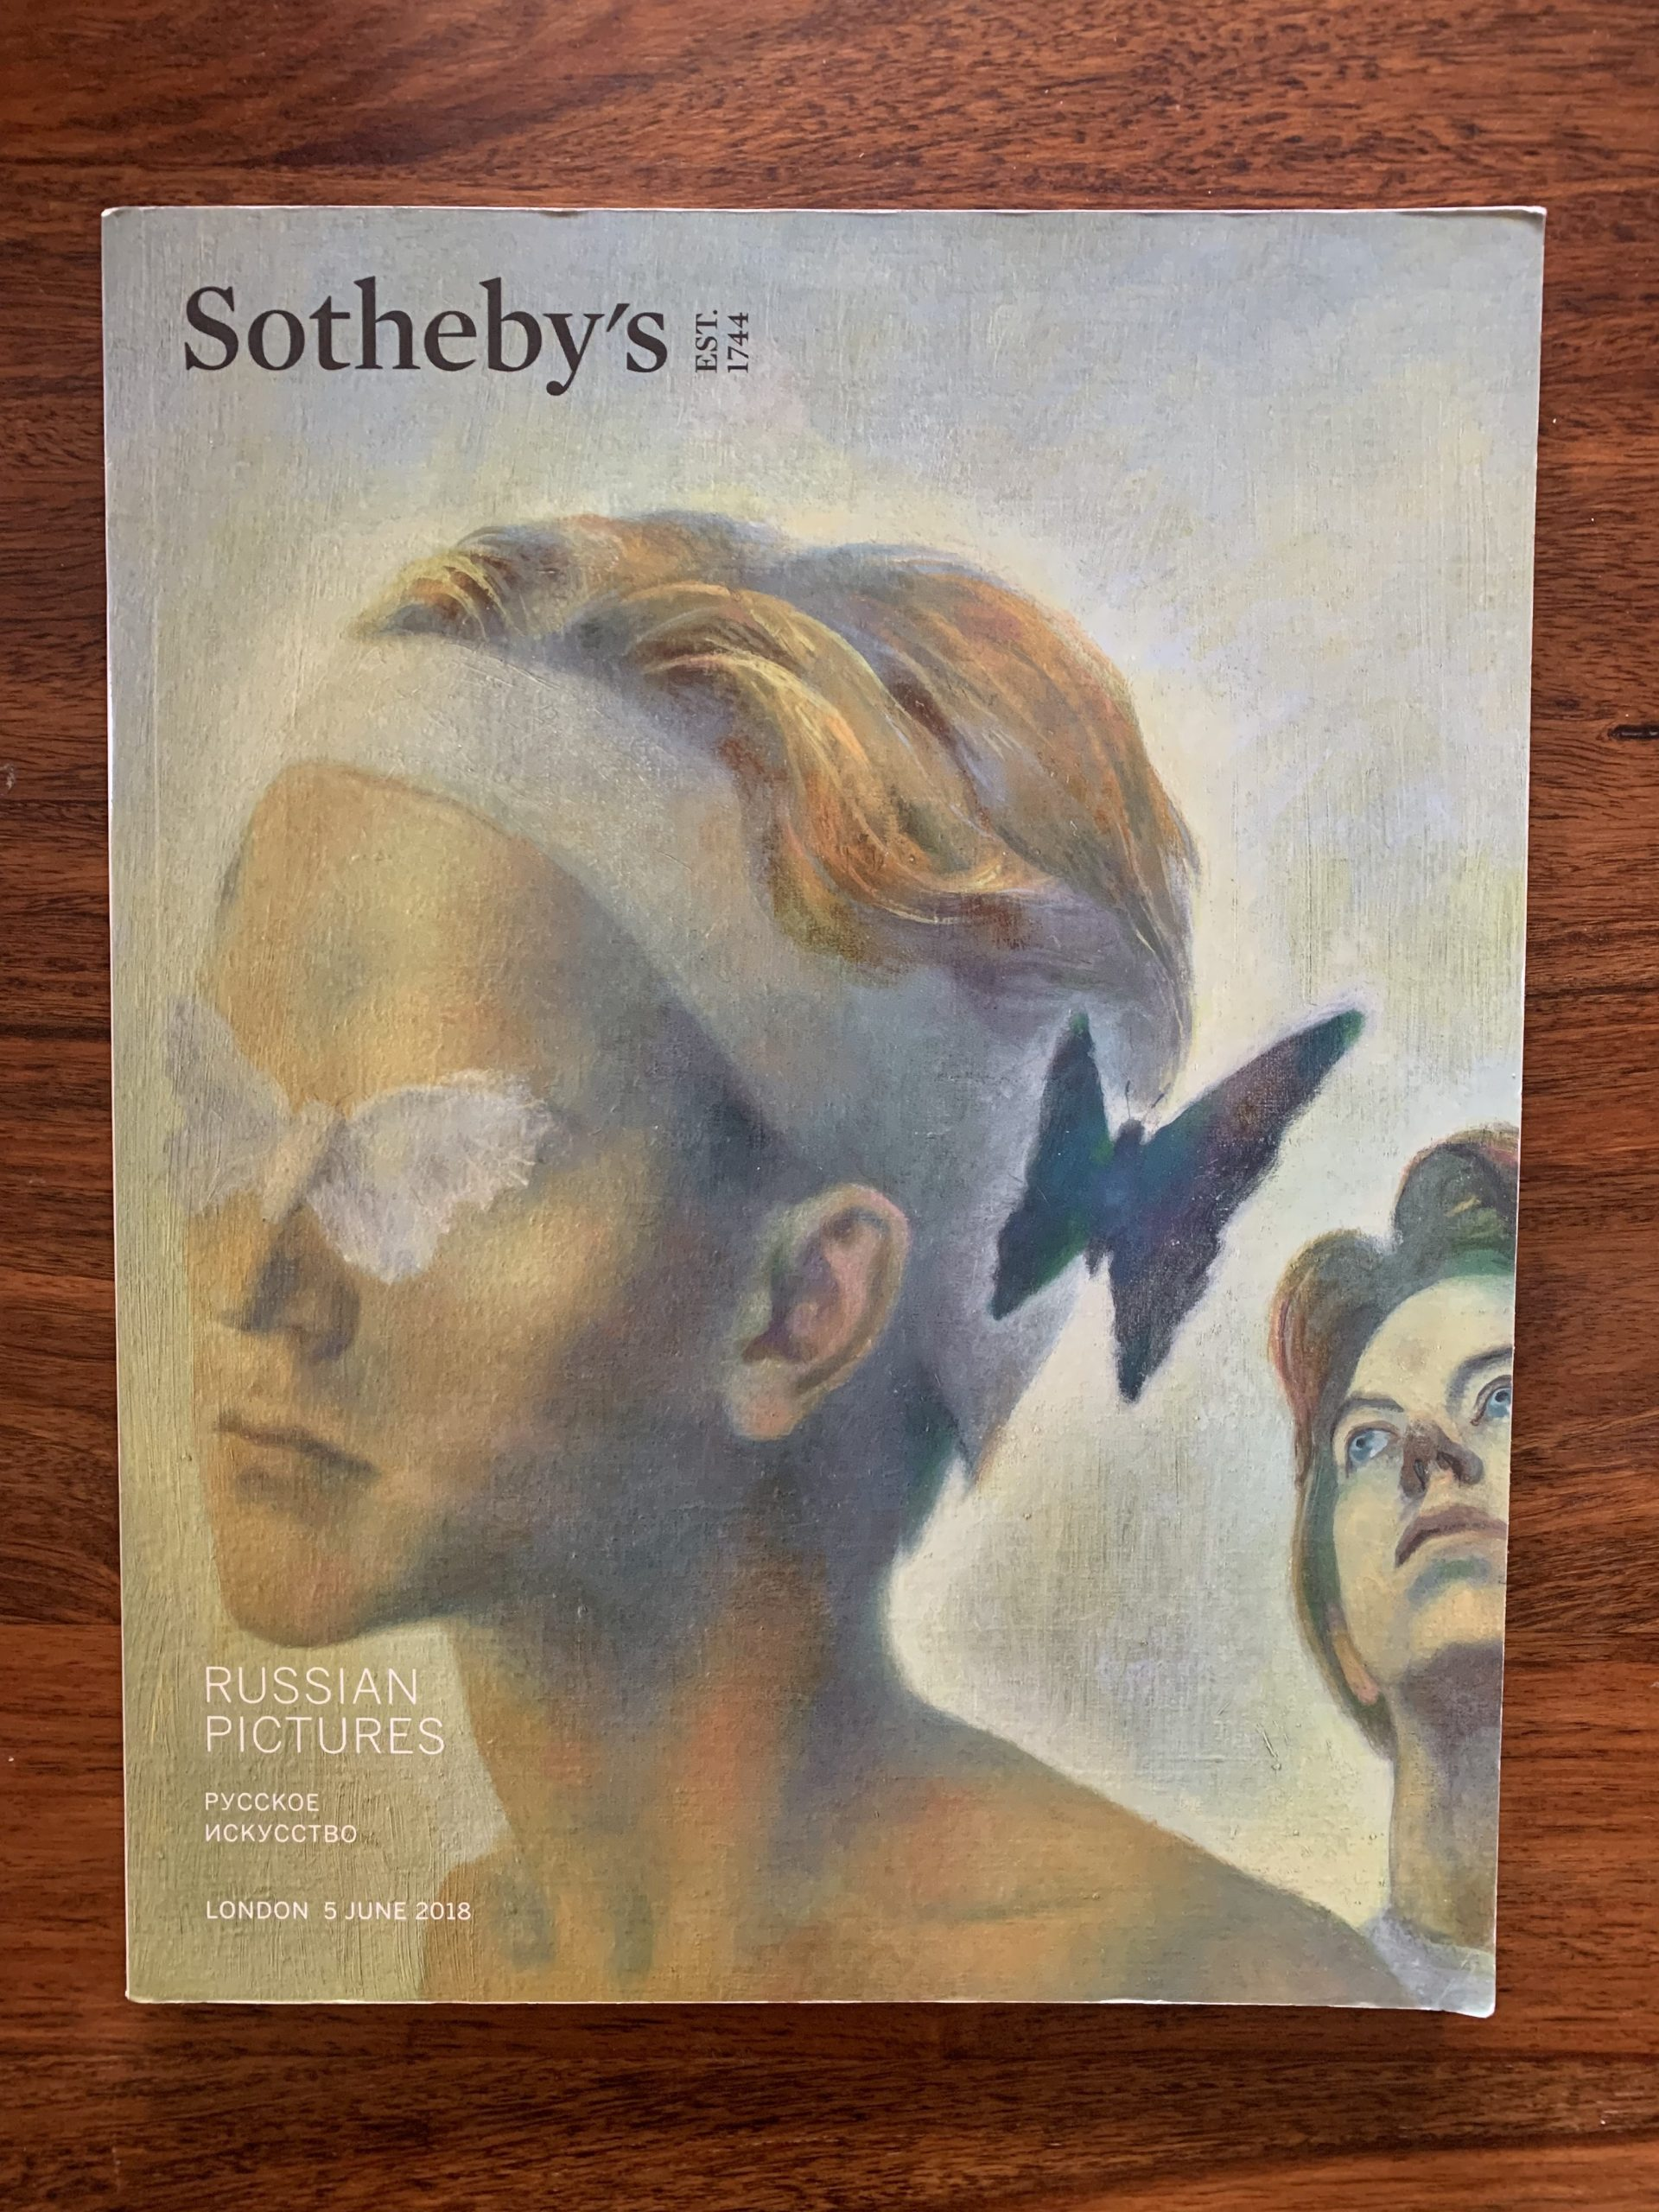 Sotheby's. Russian Pictures: Pycckoe Nckycctbo